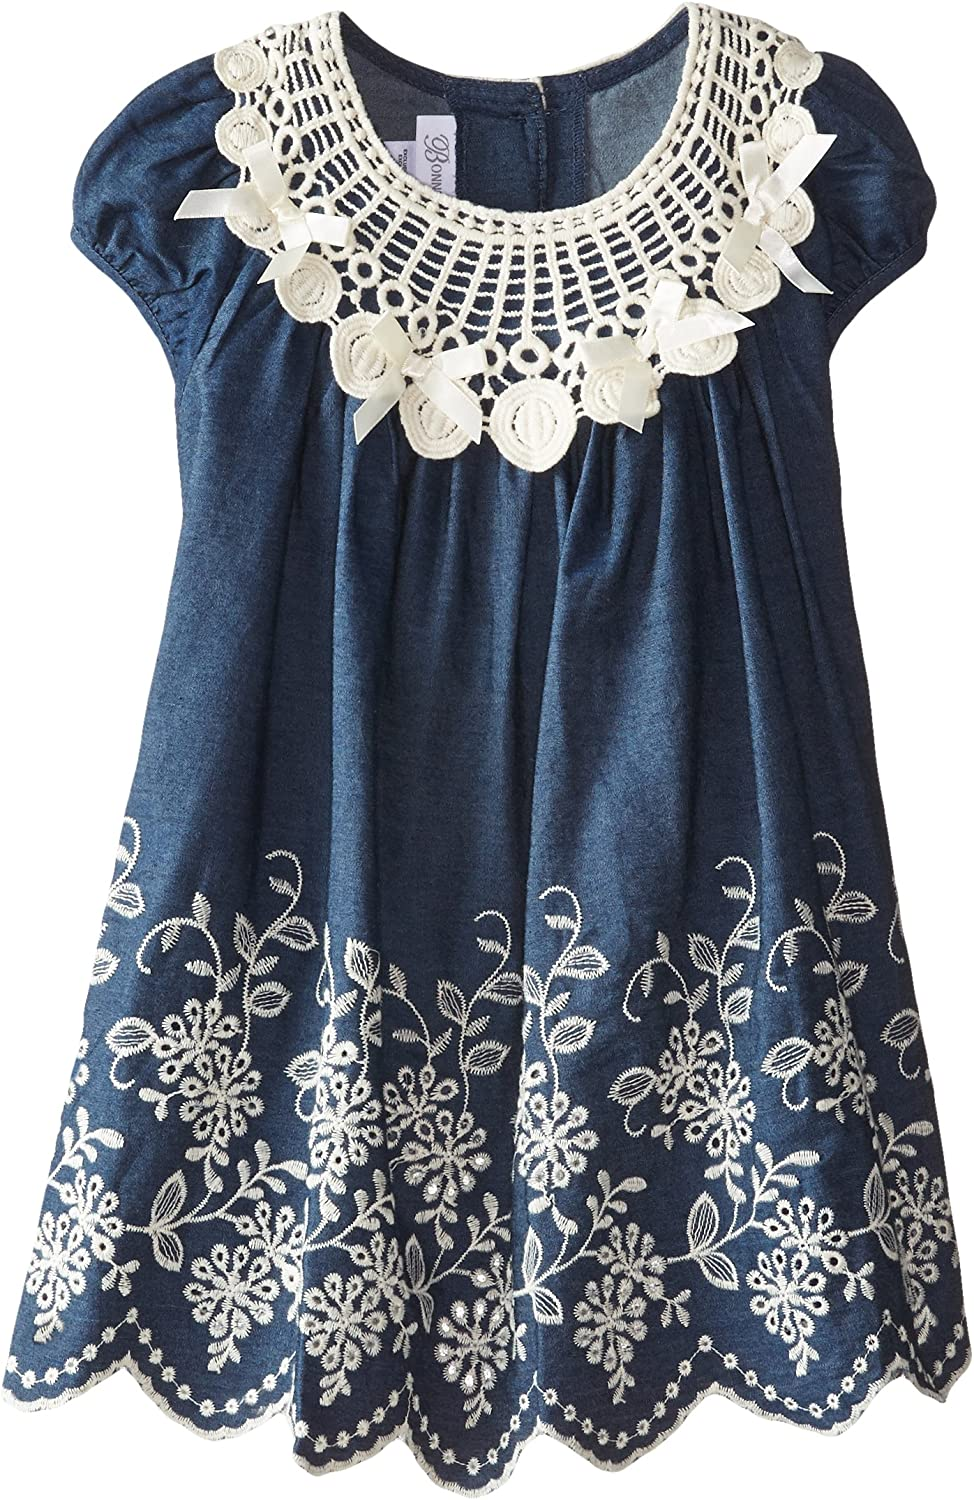 Bonnie Jean Baby Girls' Denim OFFicial shop Embroidered Border Dress 2021 new